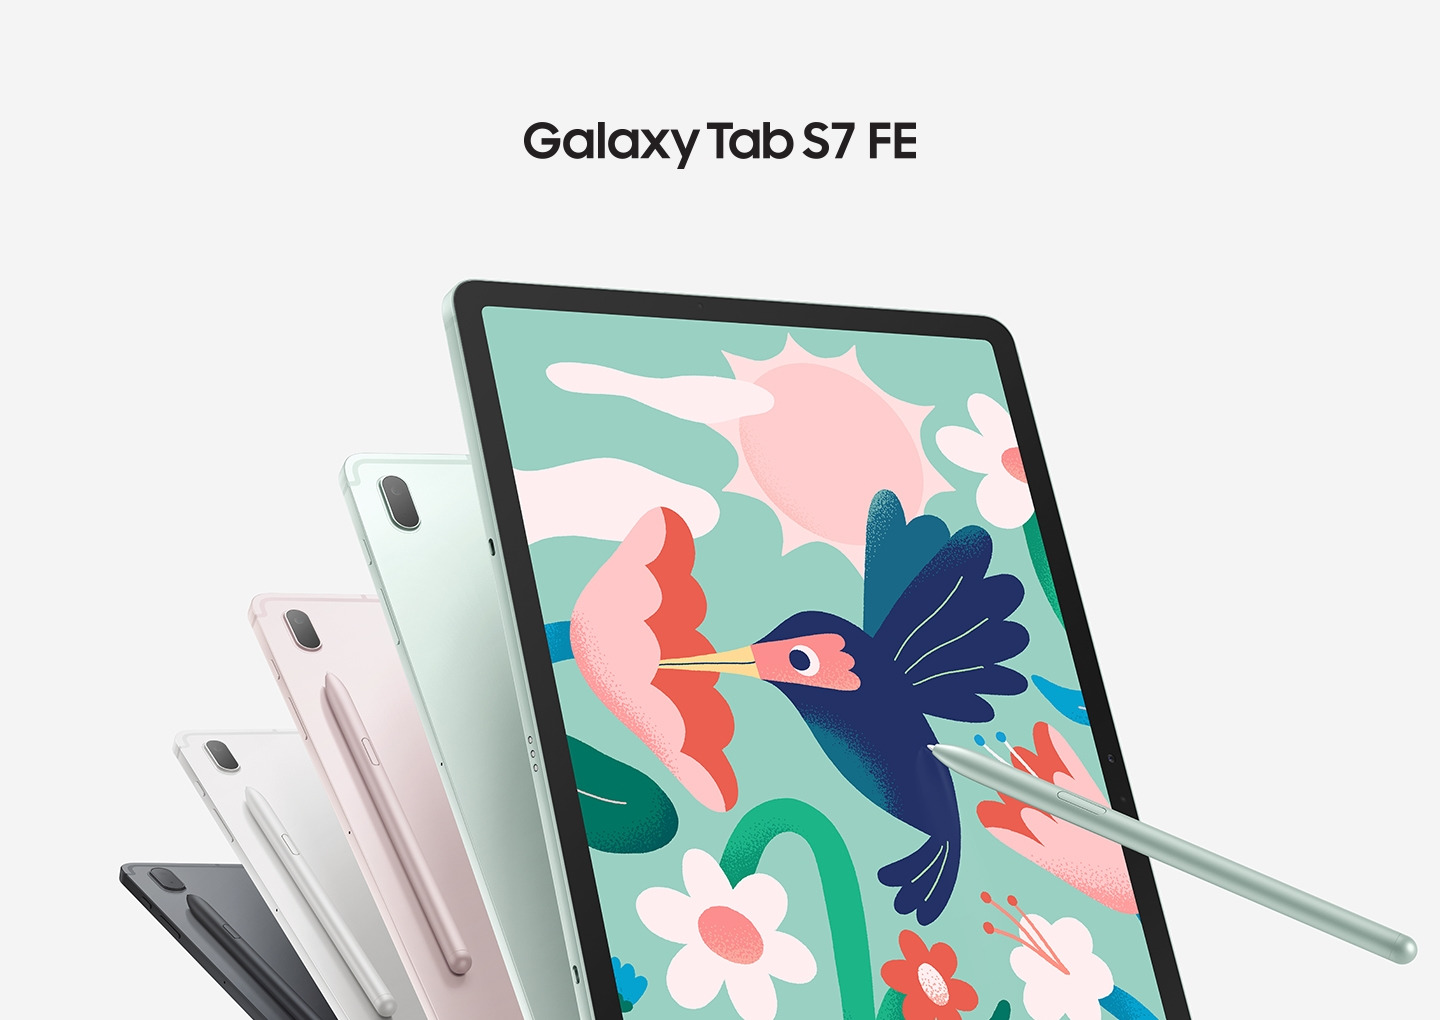 Five Galaxy Tab S7 FE tablets, four seen from the rear and one seen from the front. The ones seen from the rear show the colors Mystic Black, Mystic Silver, Mystic Pink and Mystic Green, and the matching S Pen is magnetically attached on the back. The tablet seen from the front has the S Pen touching the screen as it draws a hummingbird sipping from a flower. Text says Galaxy Tab S7 FE